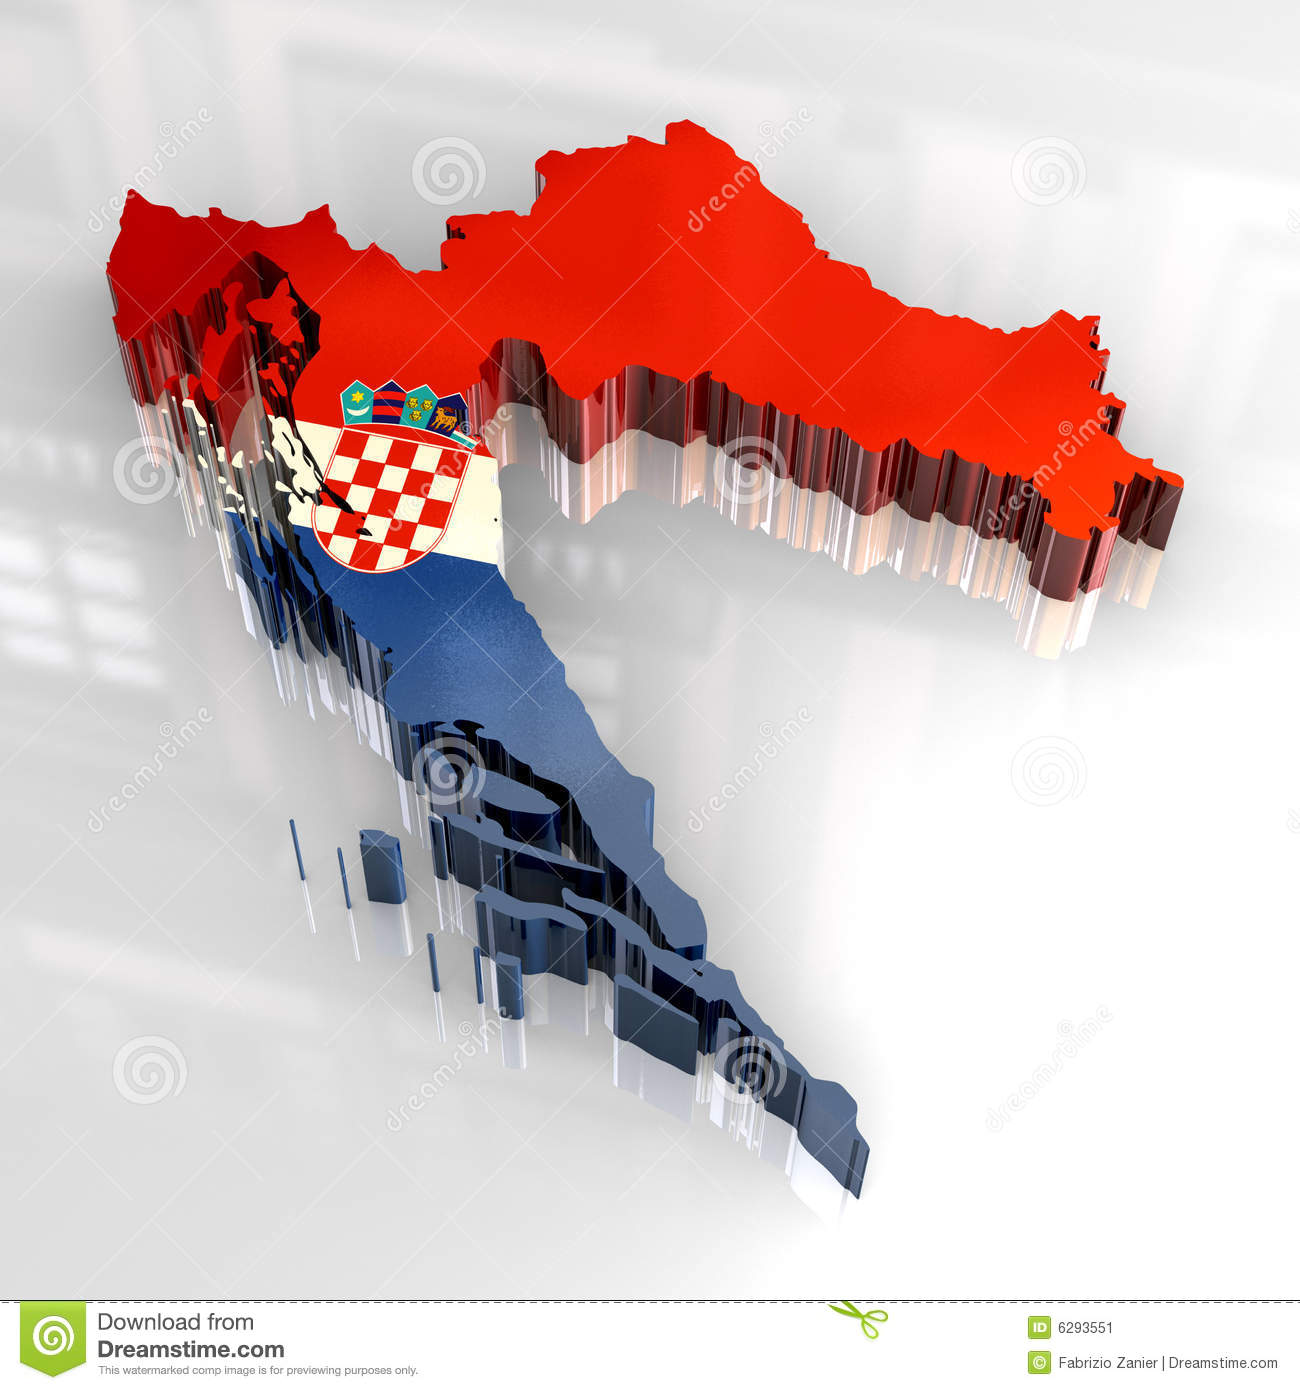 yugoslavia map with Stock Image 3d Flag Map Croatia Image6293551 on Watch furthermore Belgrade besides File Locator map Slovenia in Yugoslavia furthermore Stock Image 3d Flag Map Croatia Image6293551 in addition Images.